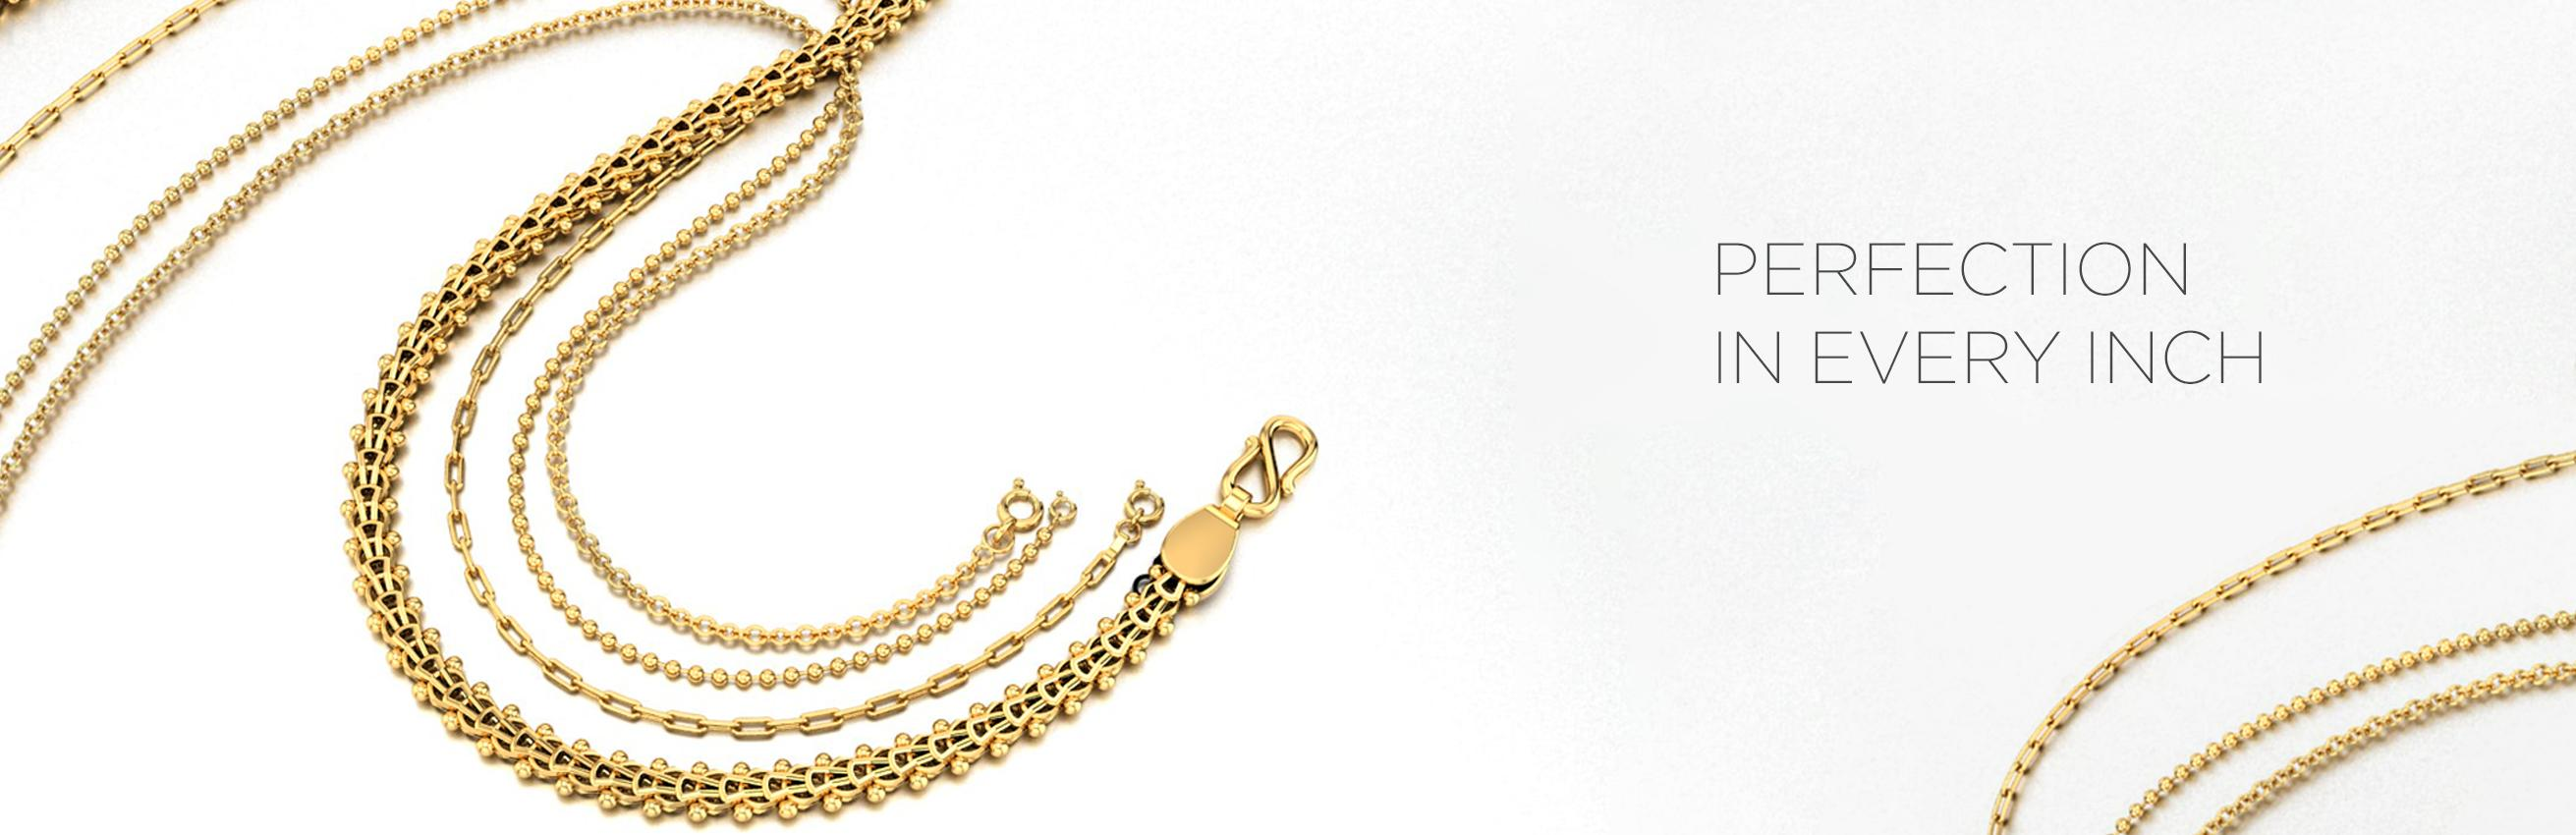 Gold chain design and gold chain models